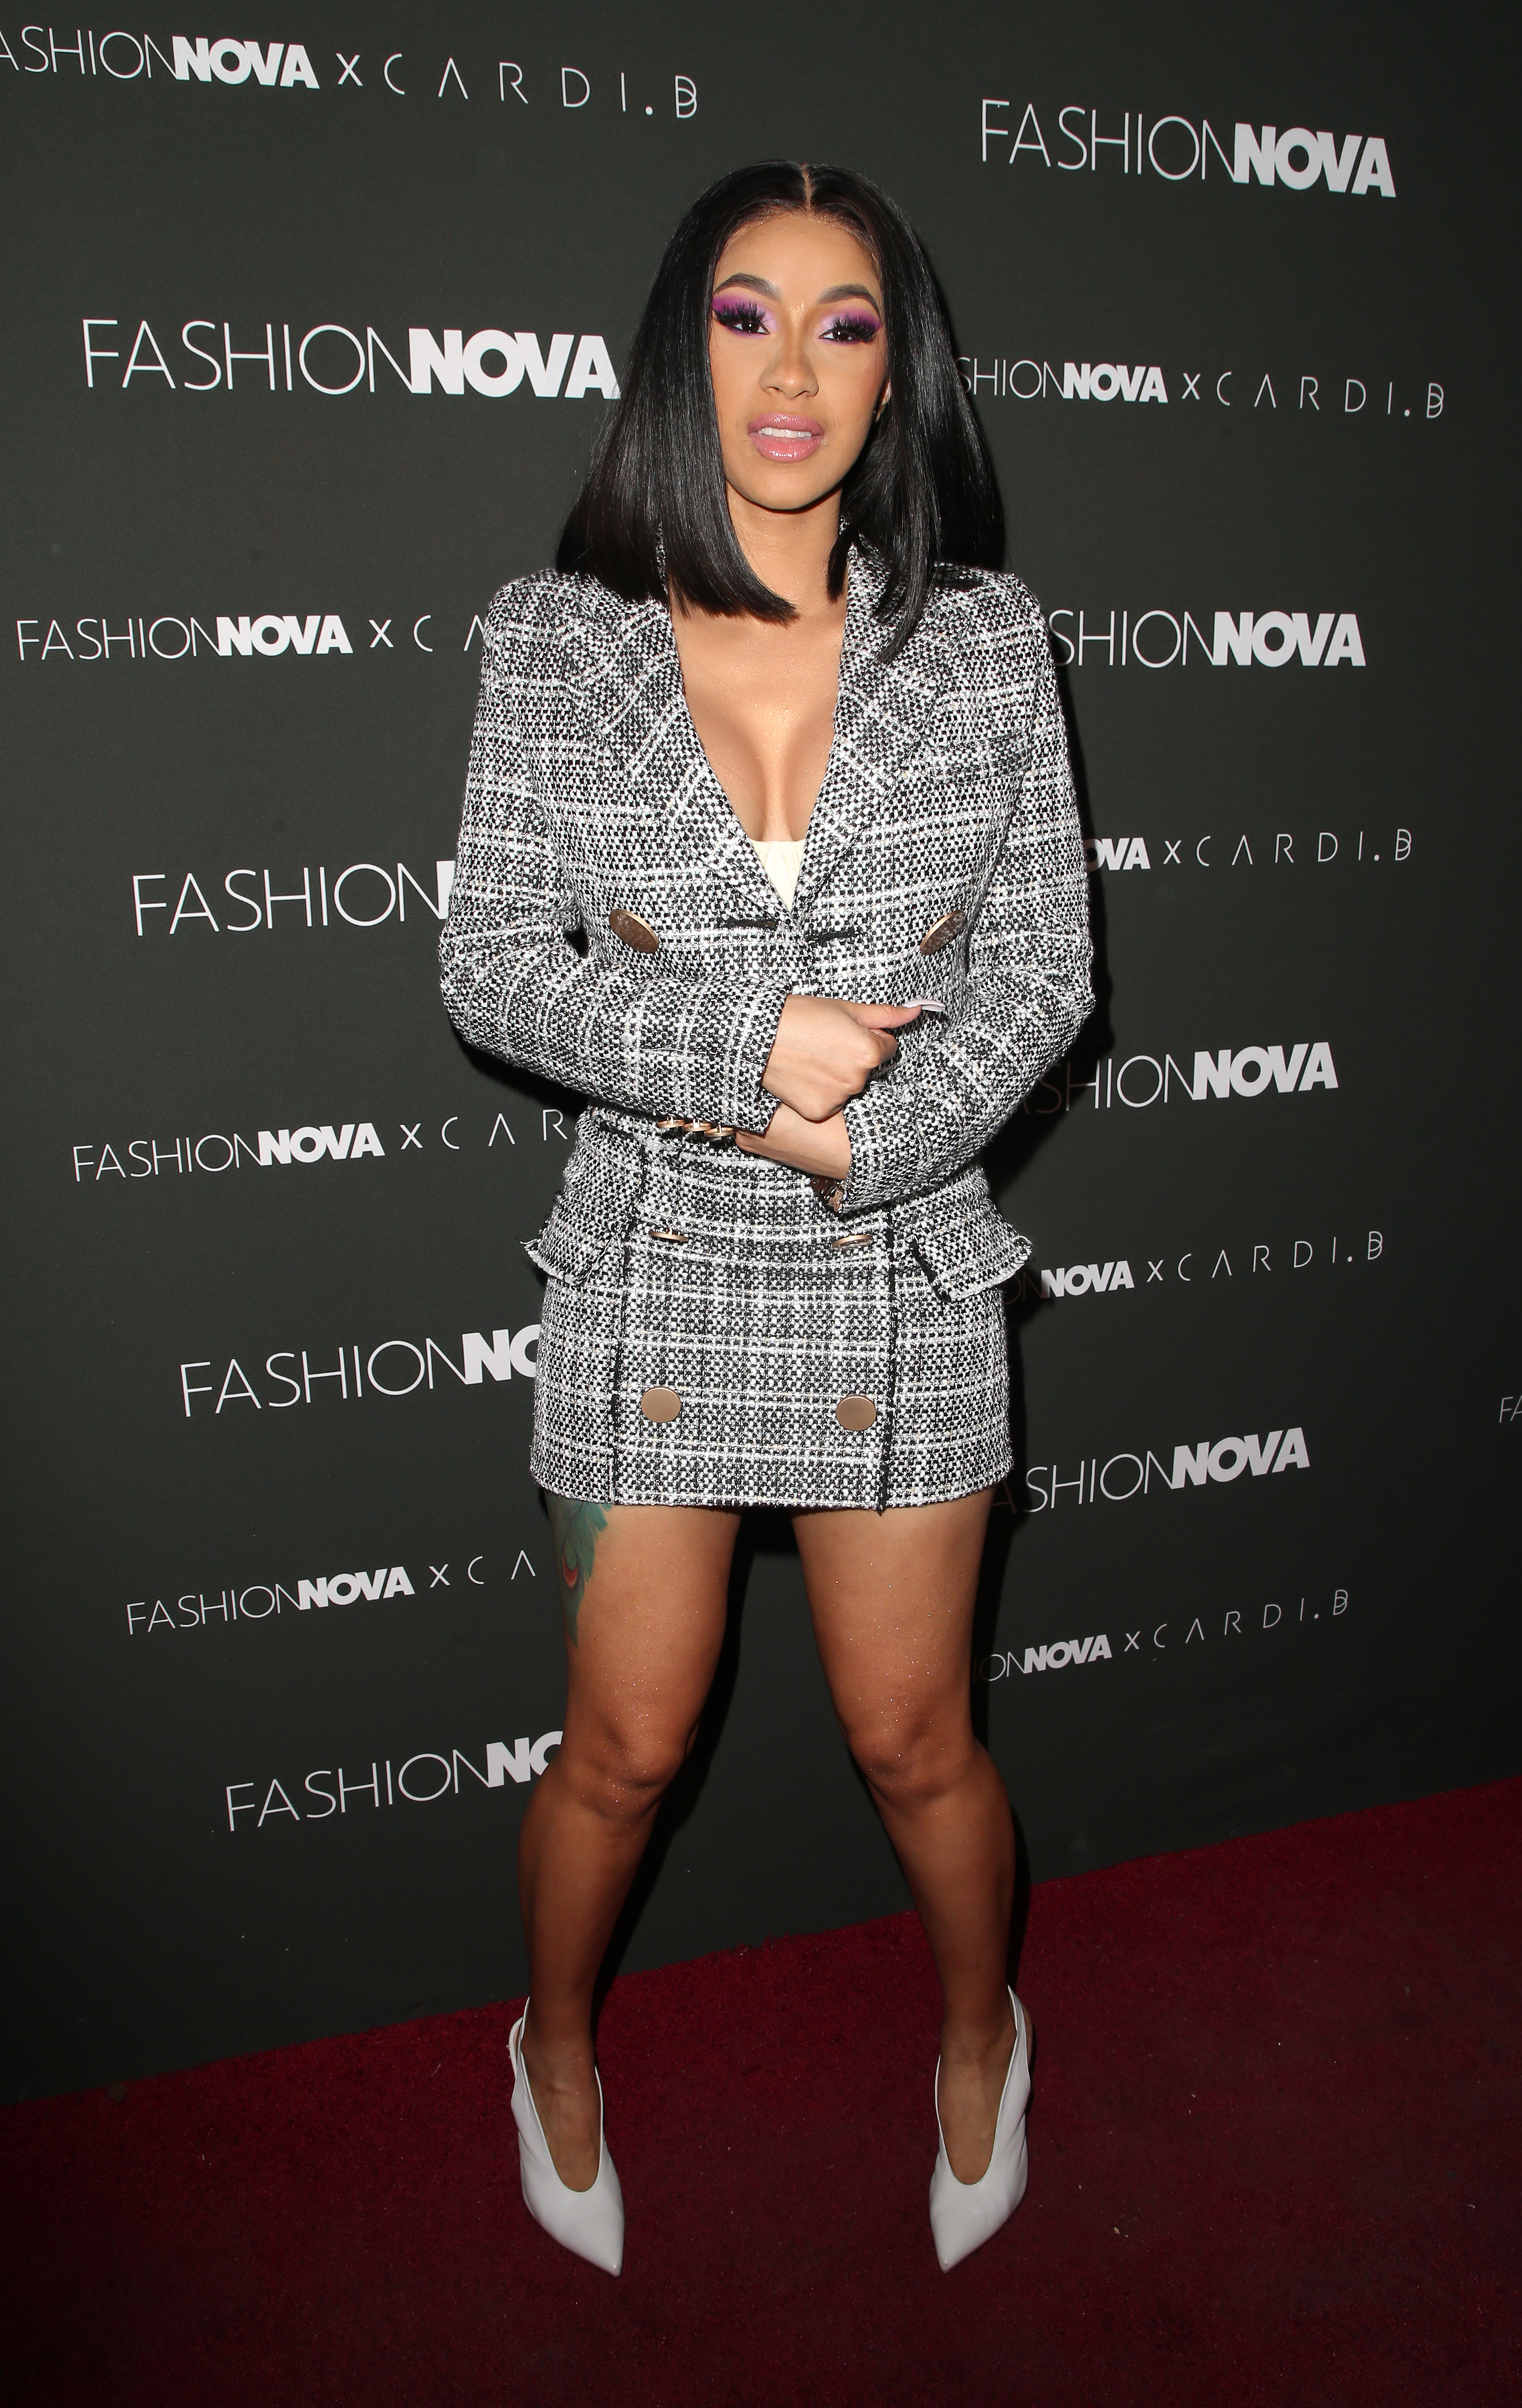 Fashion Nova x Cardi B Collaboration Launch Event